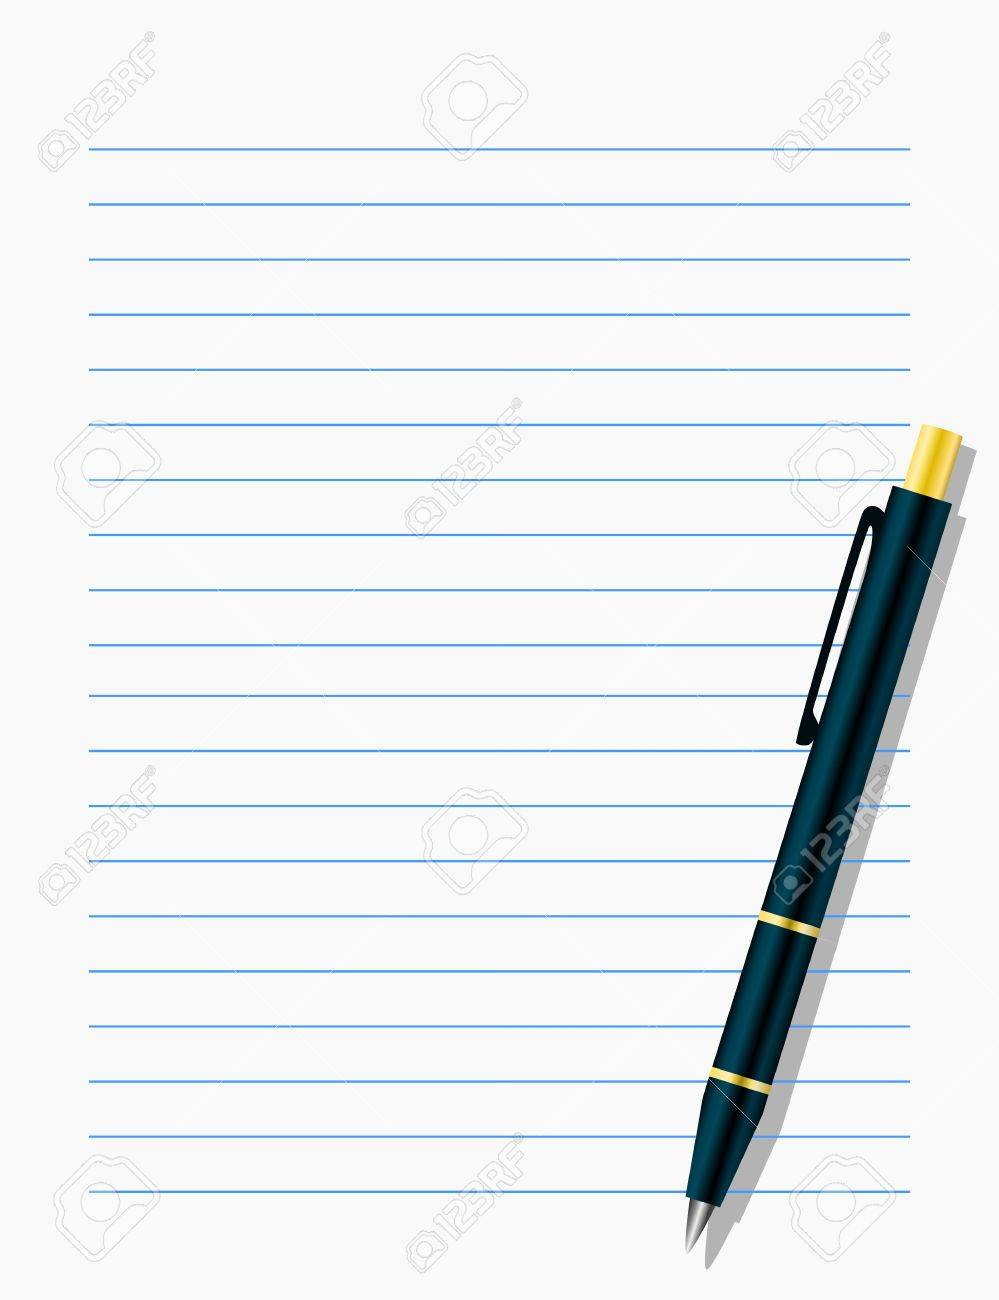 Blank workbook page with pen Stock Vector - 16877991